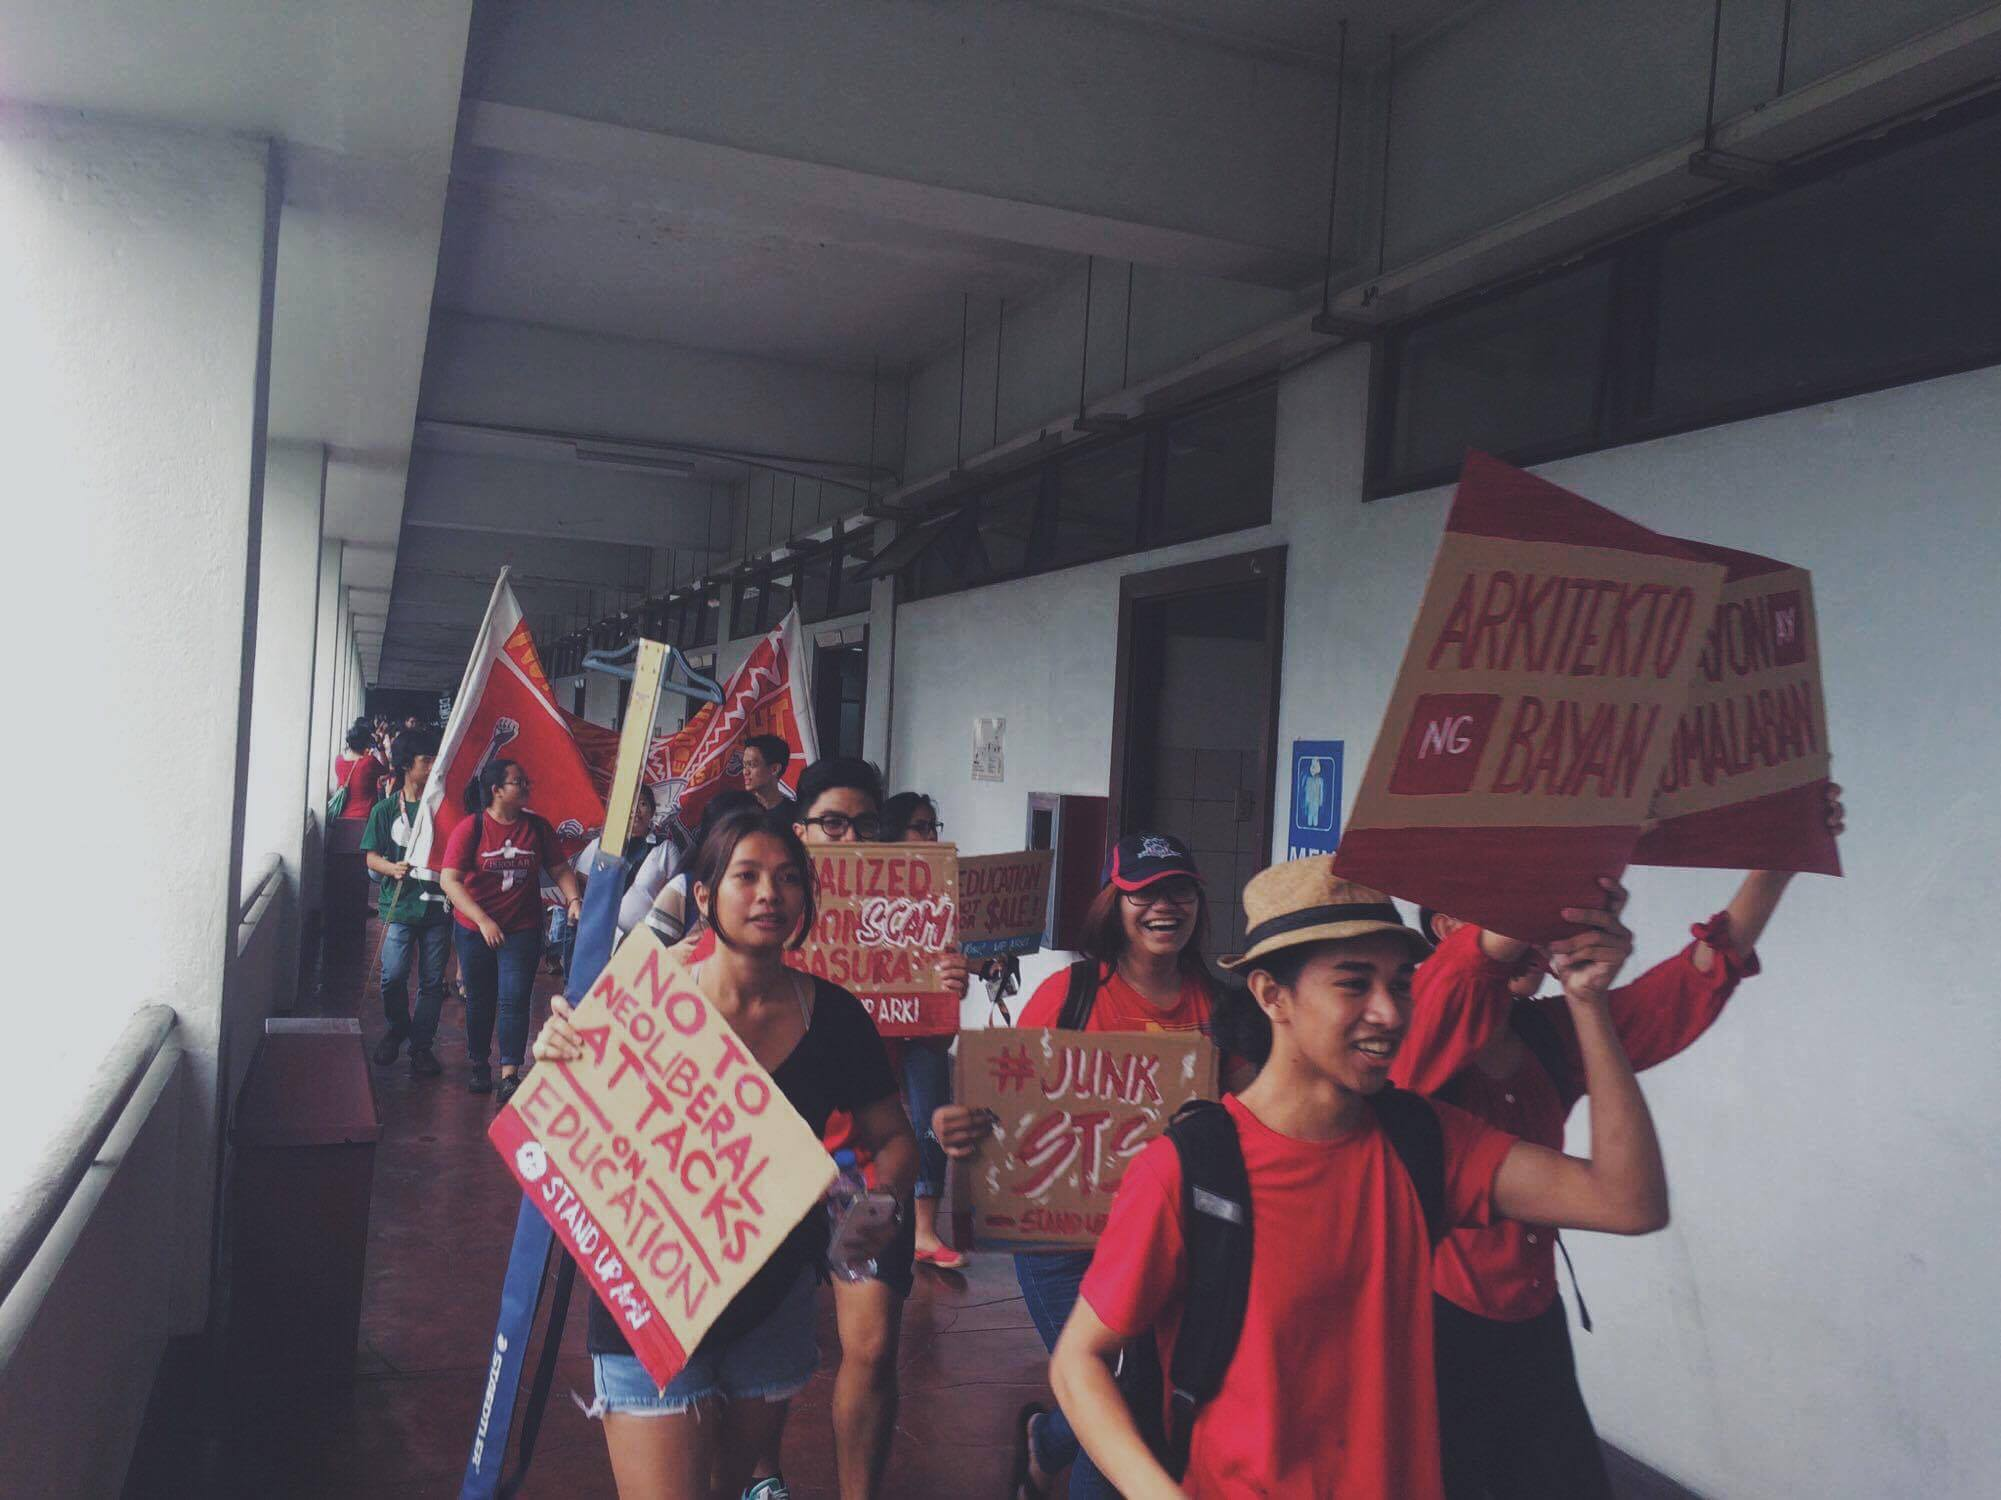 Attacks on education, human rights prompt students' walkout on Martial Law anniversary